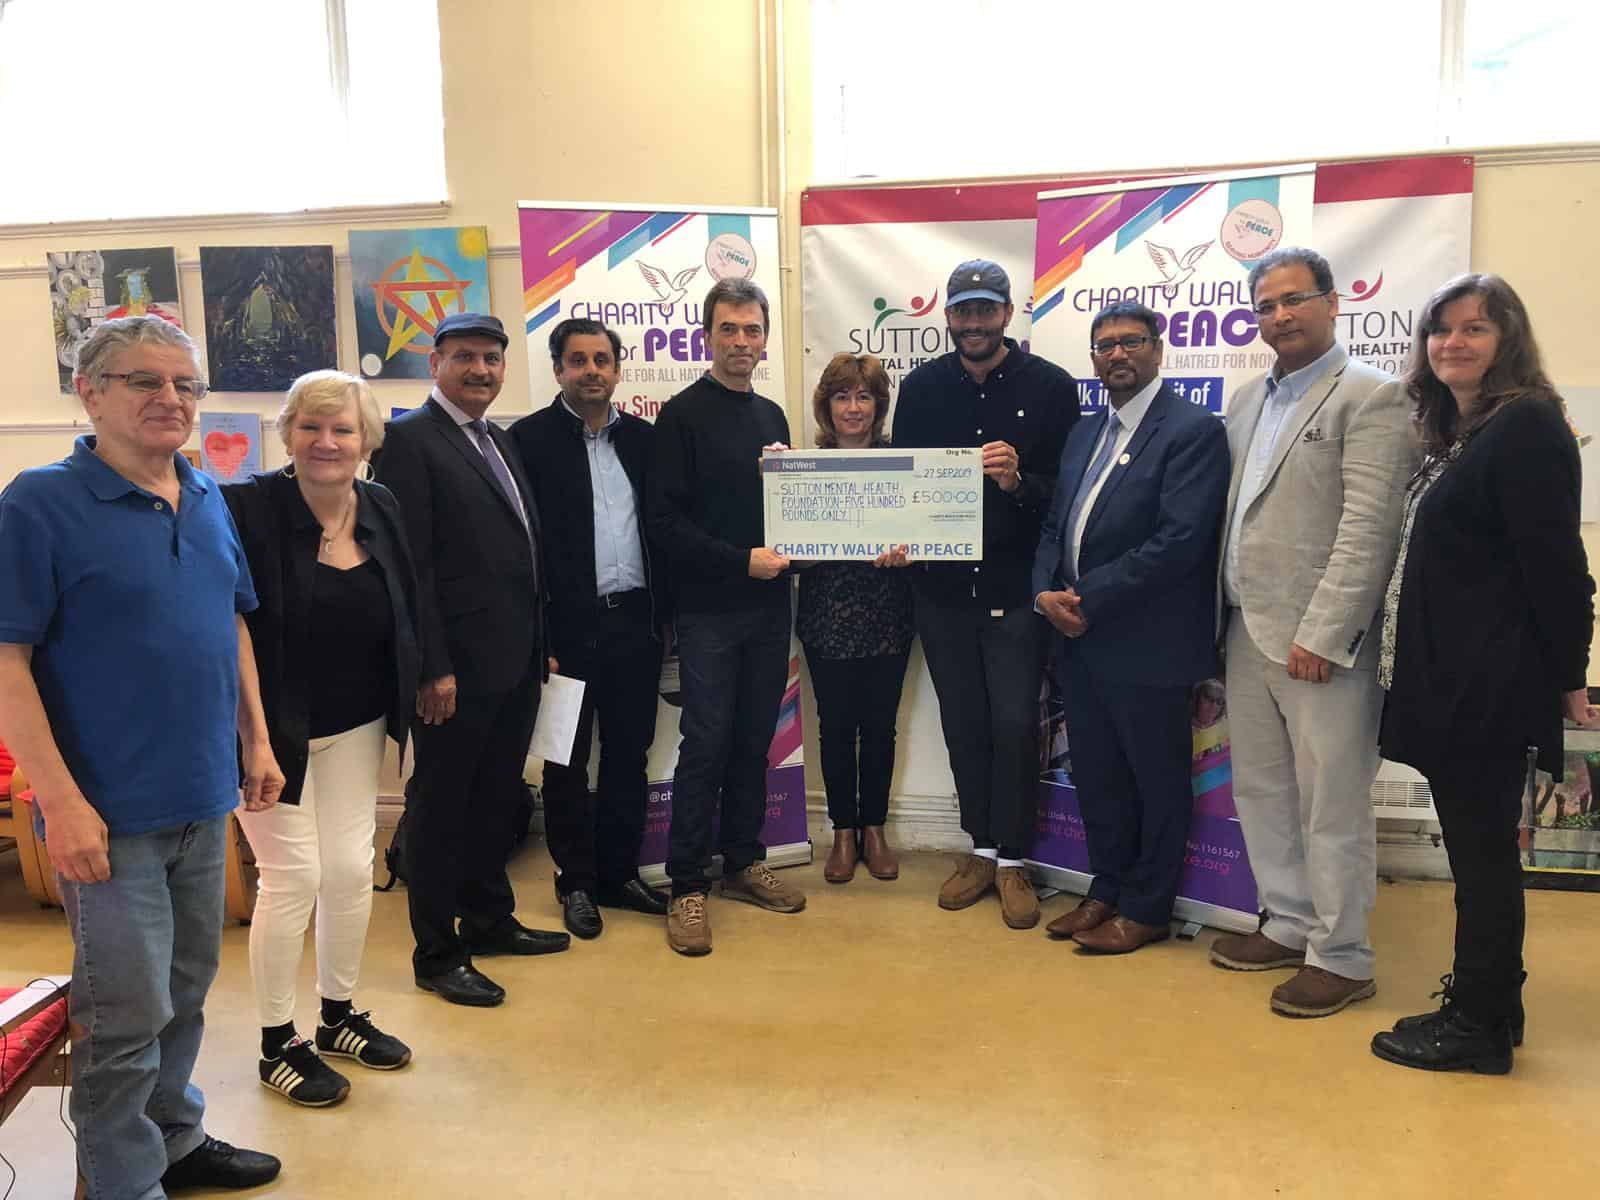 Charity Walk for Peace present Sutton Mental Health Foundation with £500.00 cheque